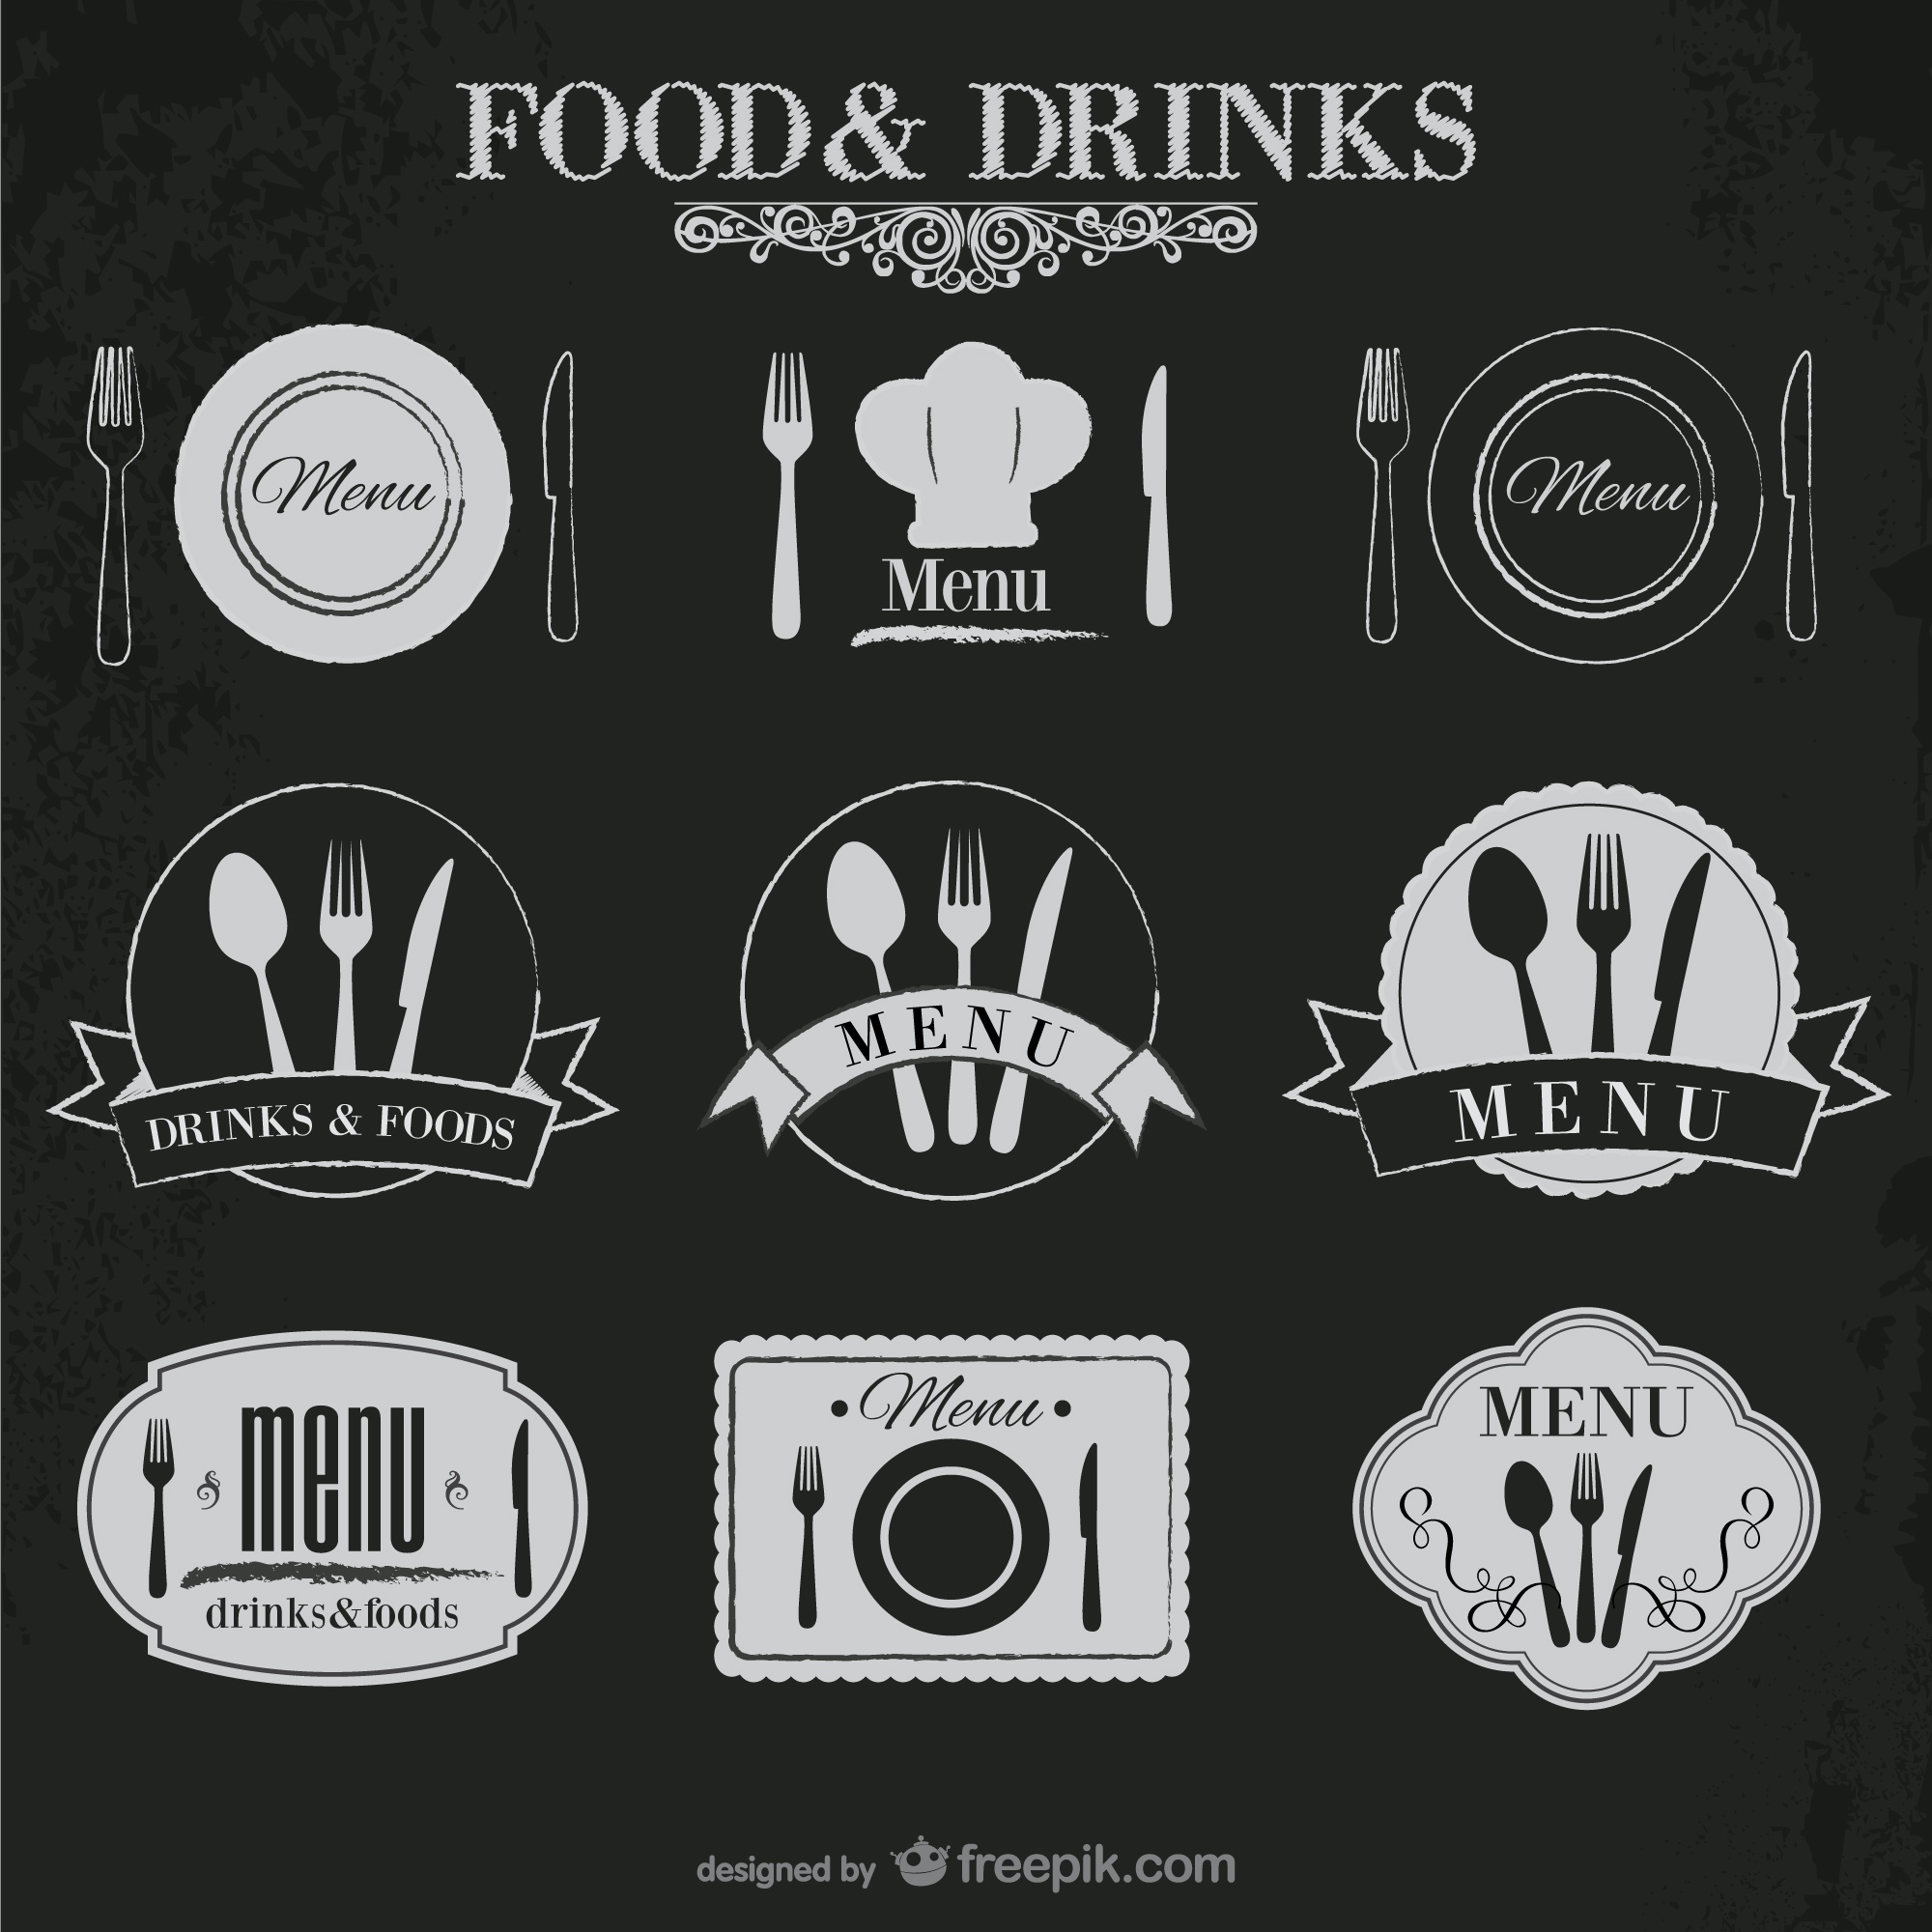 Food and drinks stickers